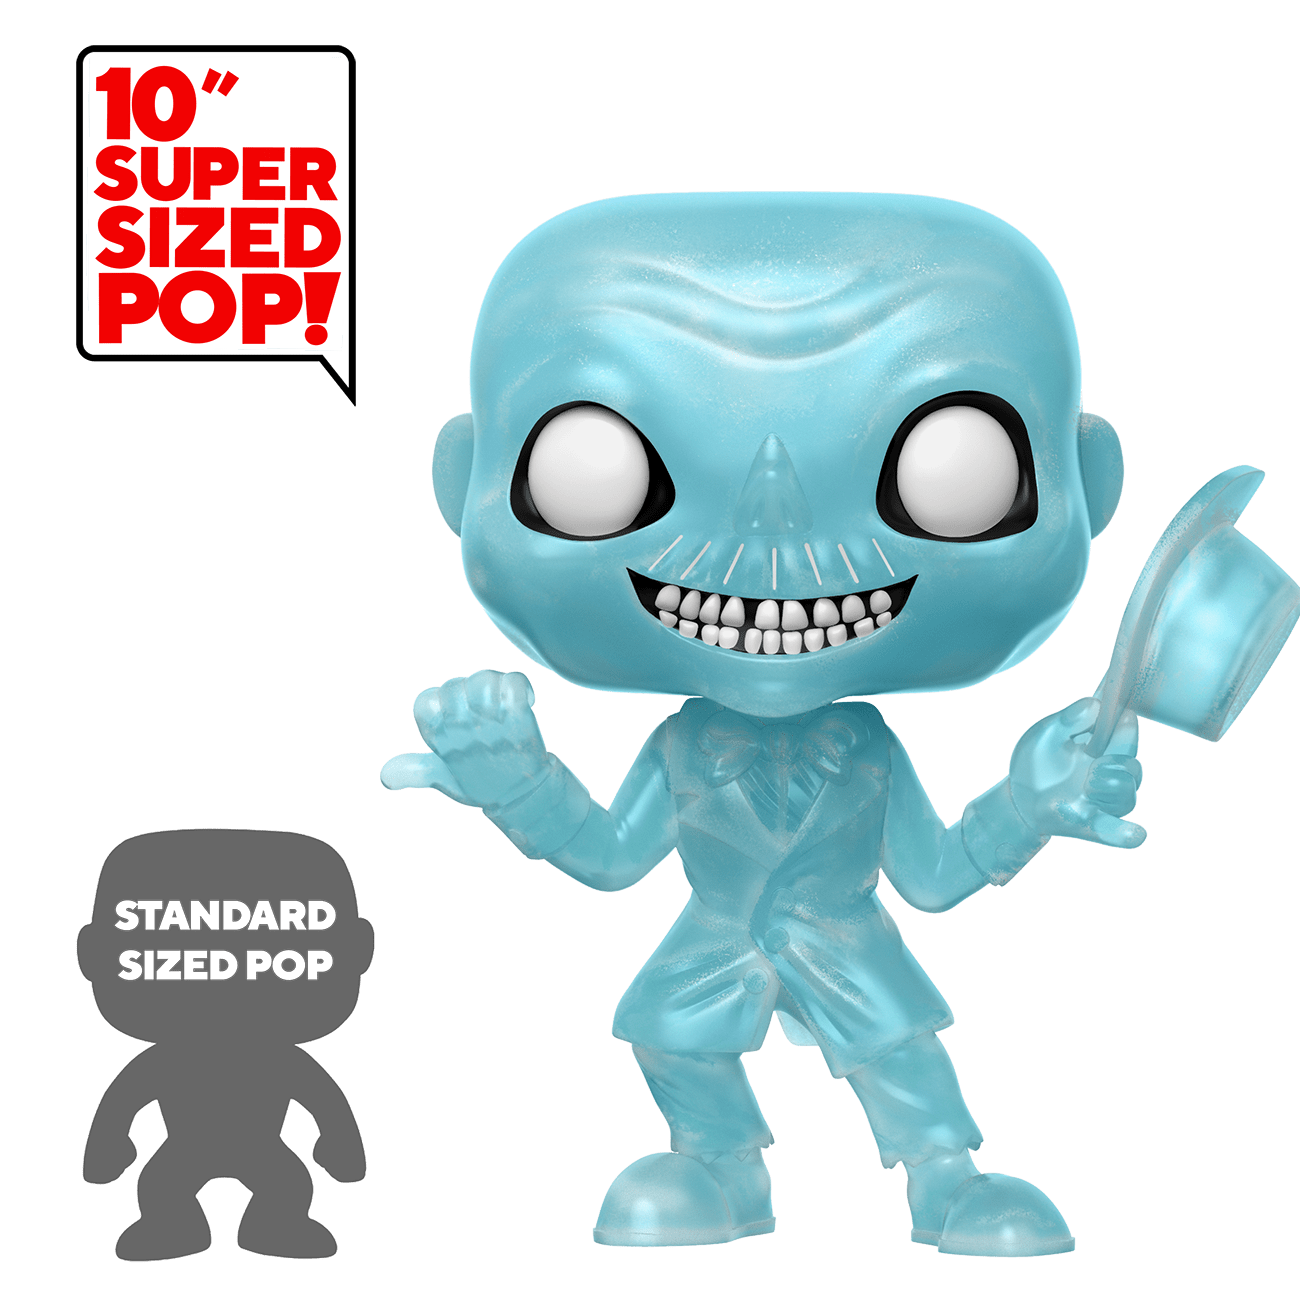 Haunted Mansion Funko POP! Collection Coming Soon 6